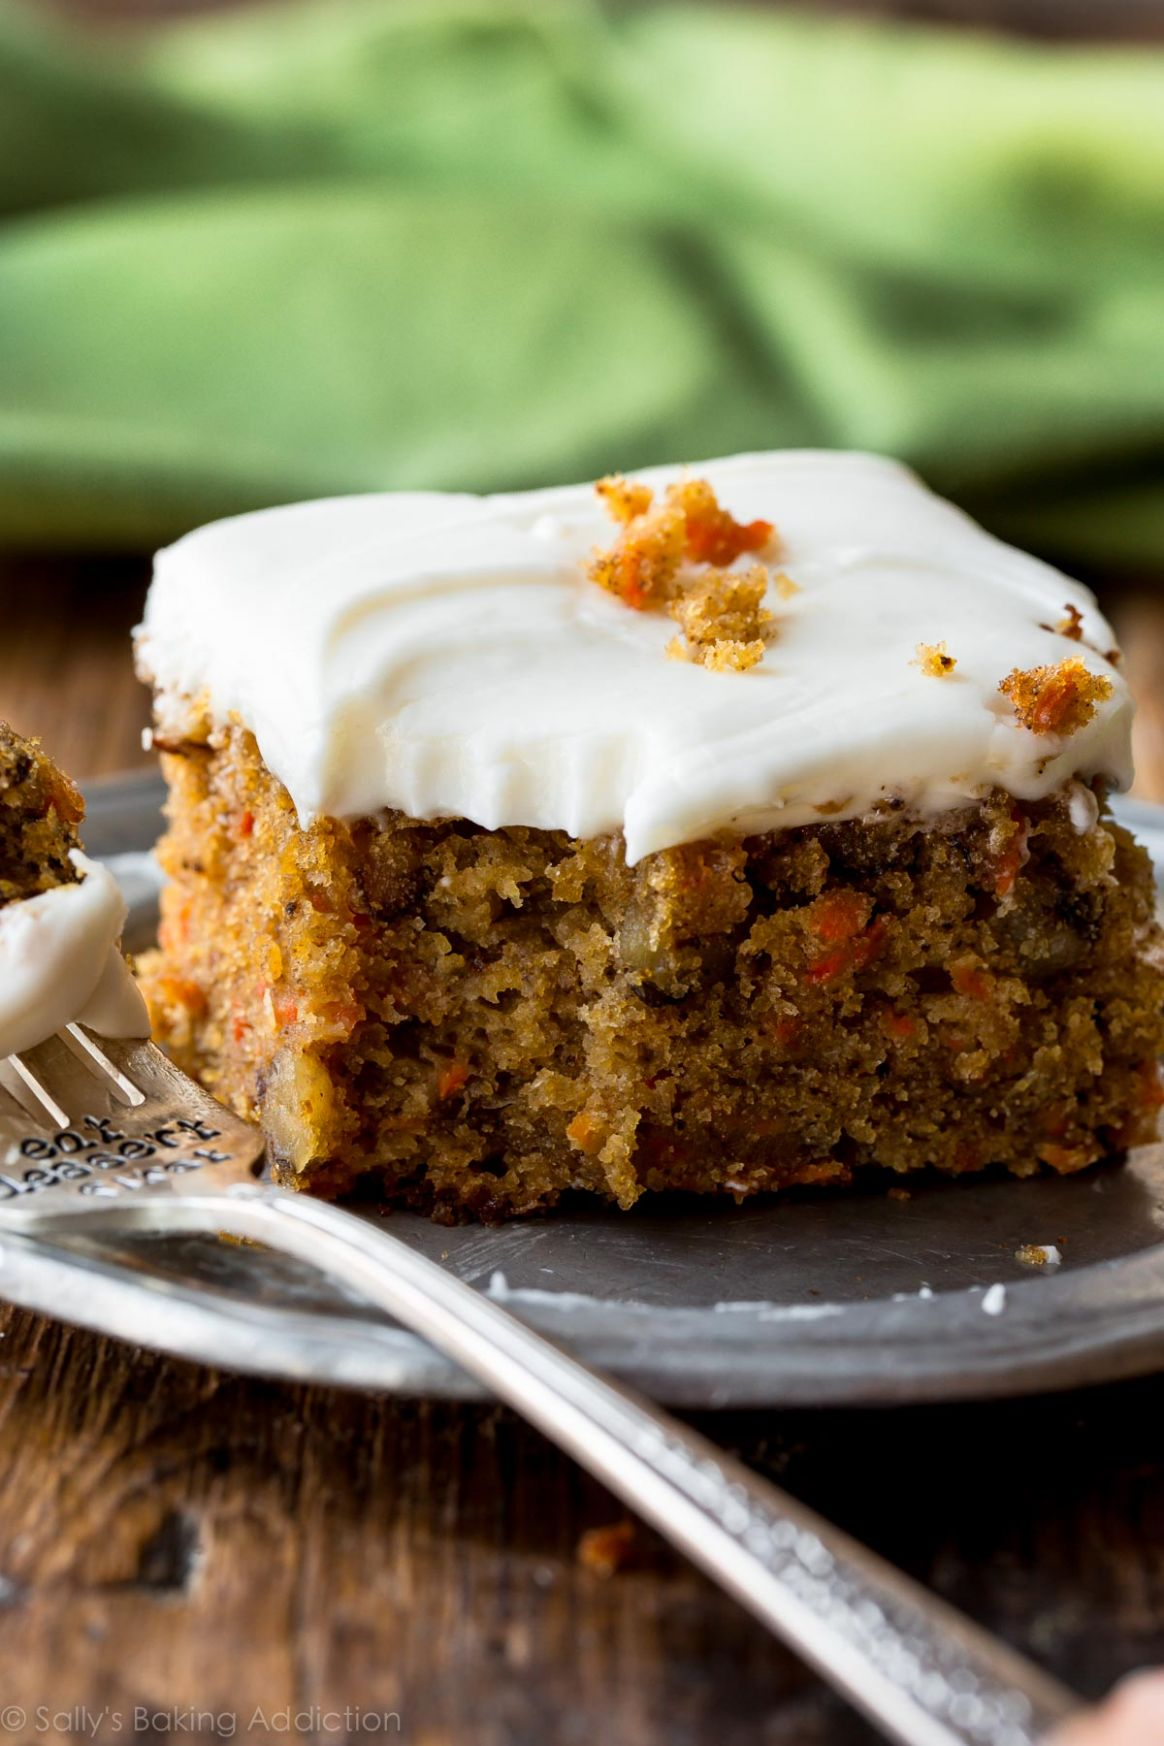 Pineapple Carrot Cake with Cream Cheese Frosting - Simple Recipes Carrot Cake